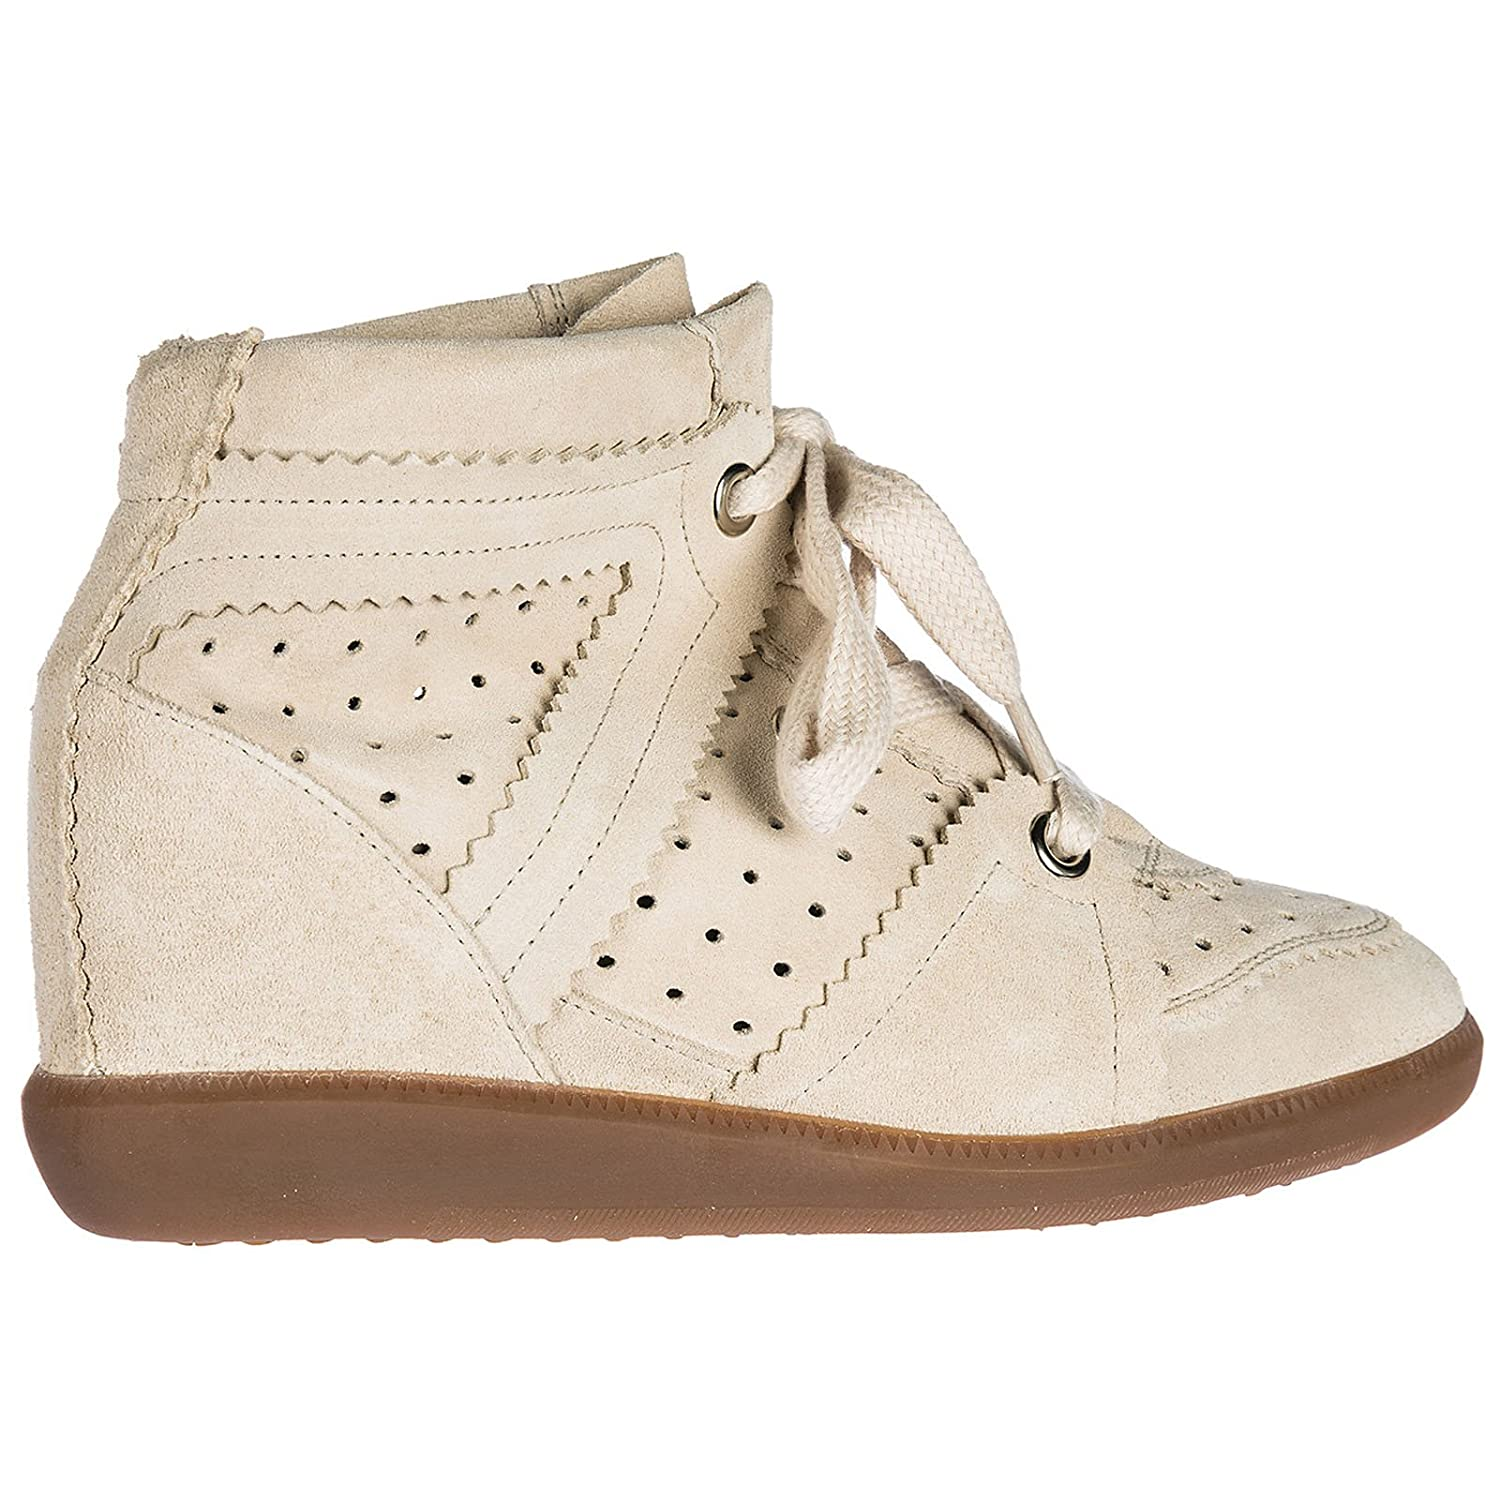 9df1aad214 Isabel Marant Women's Shoes High Top Suede Trainers Sneakers Bobby Pink UK  Size 2 BK00032 00M102S: Amazon.co.uk: Shoes & Bags